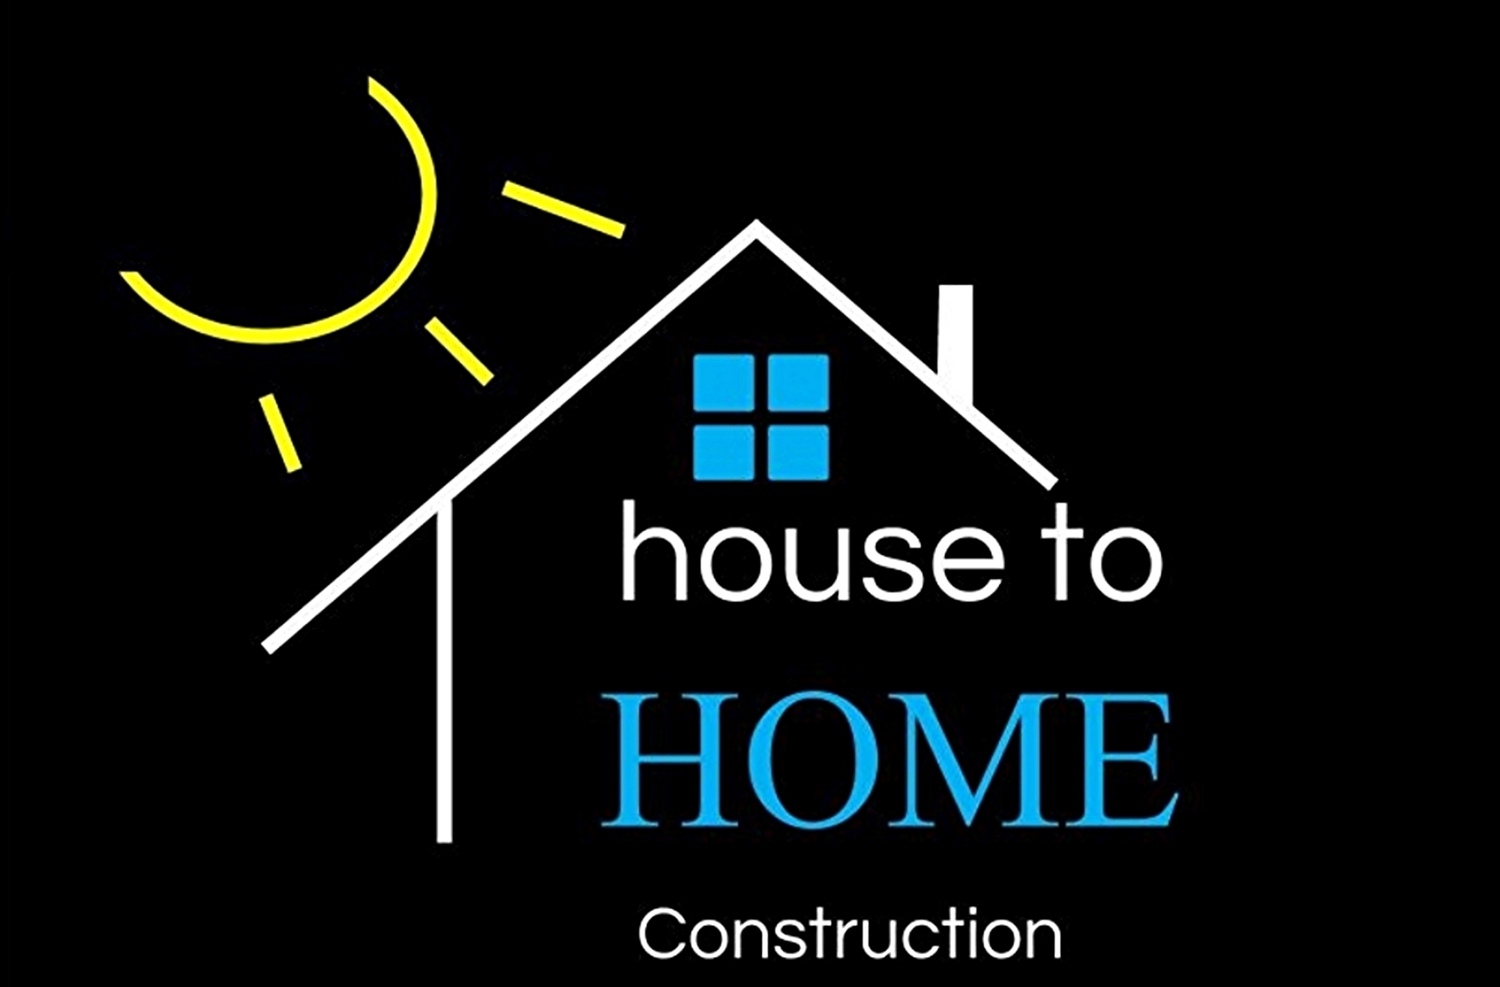 House to HOME Construction. Home Remodel, New HOME Construction, Repair